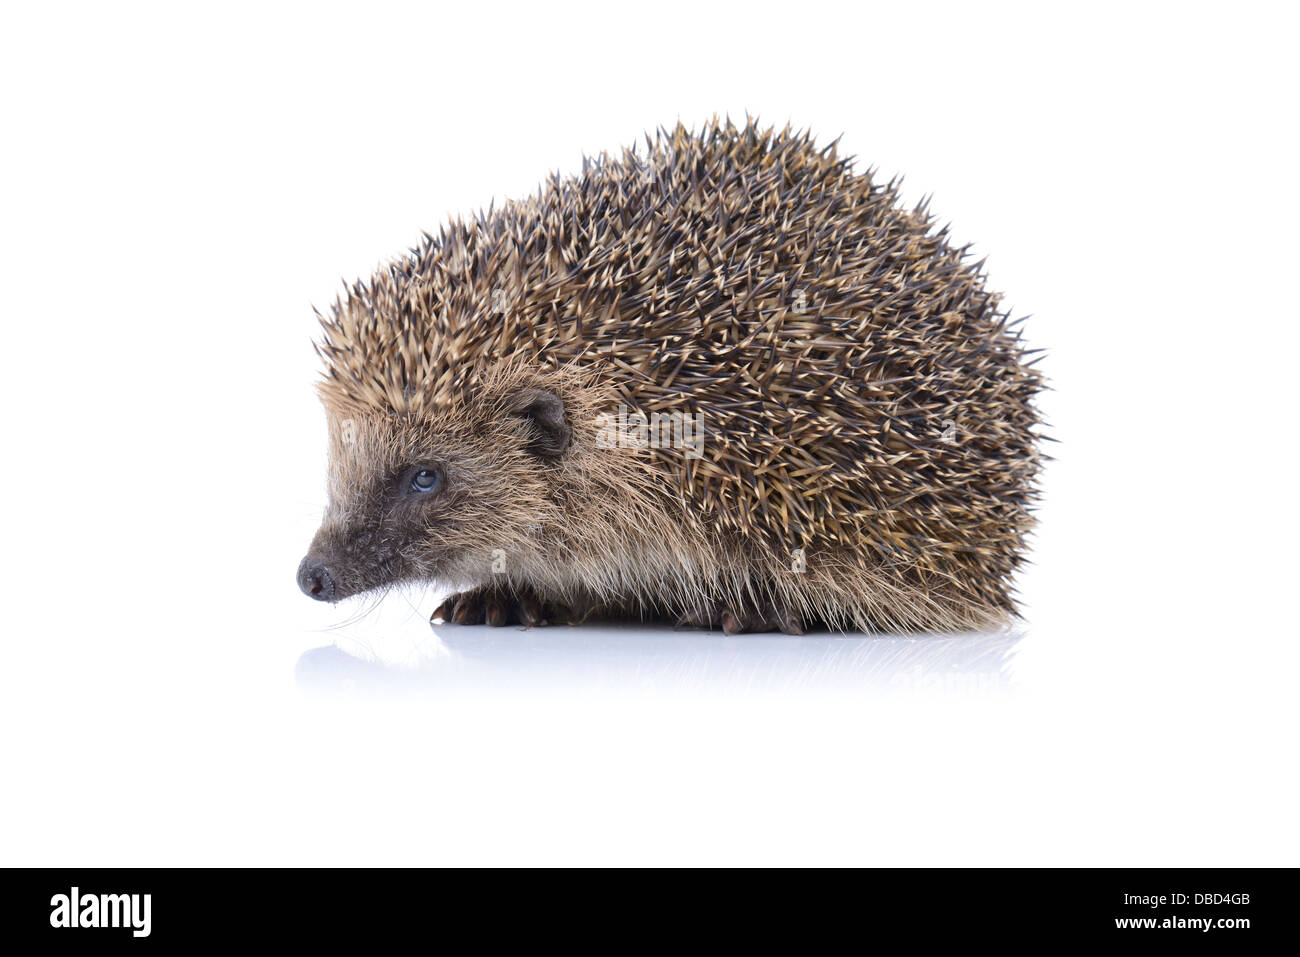 Concept of security a cute hedgehog isolated on white background - Stock Image